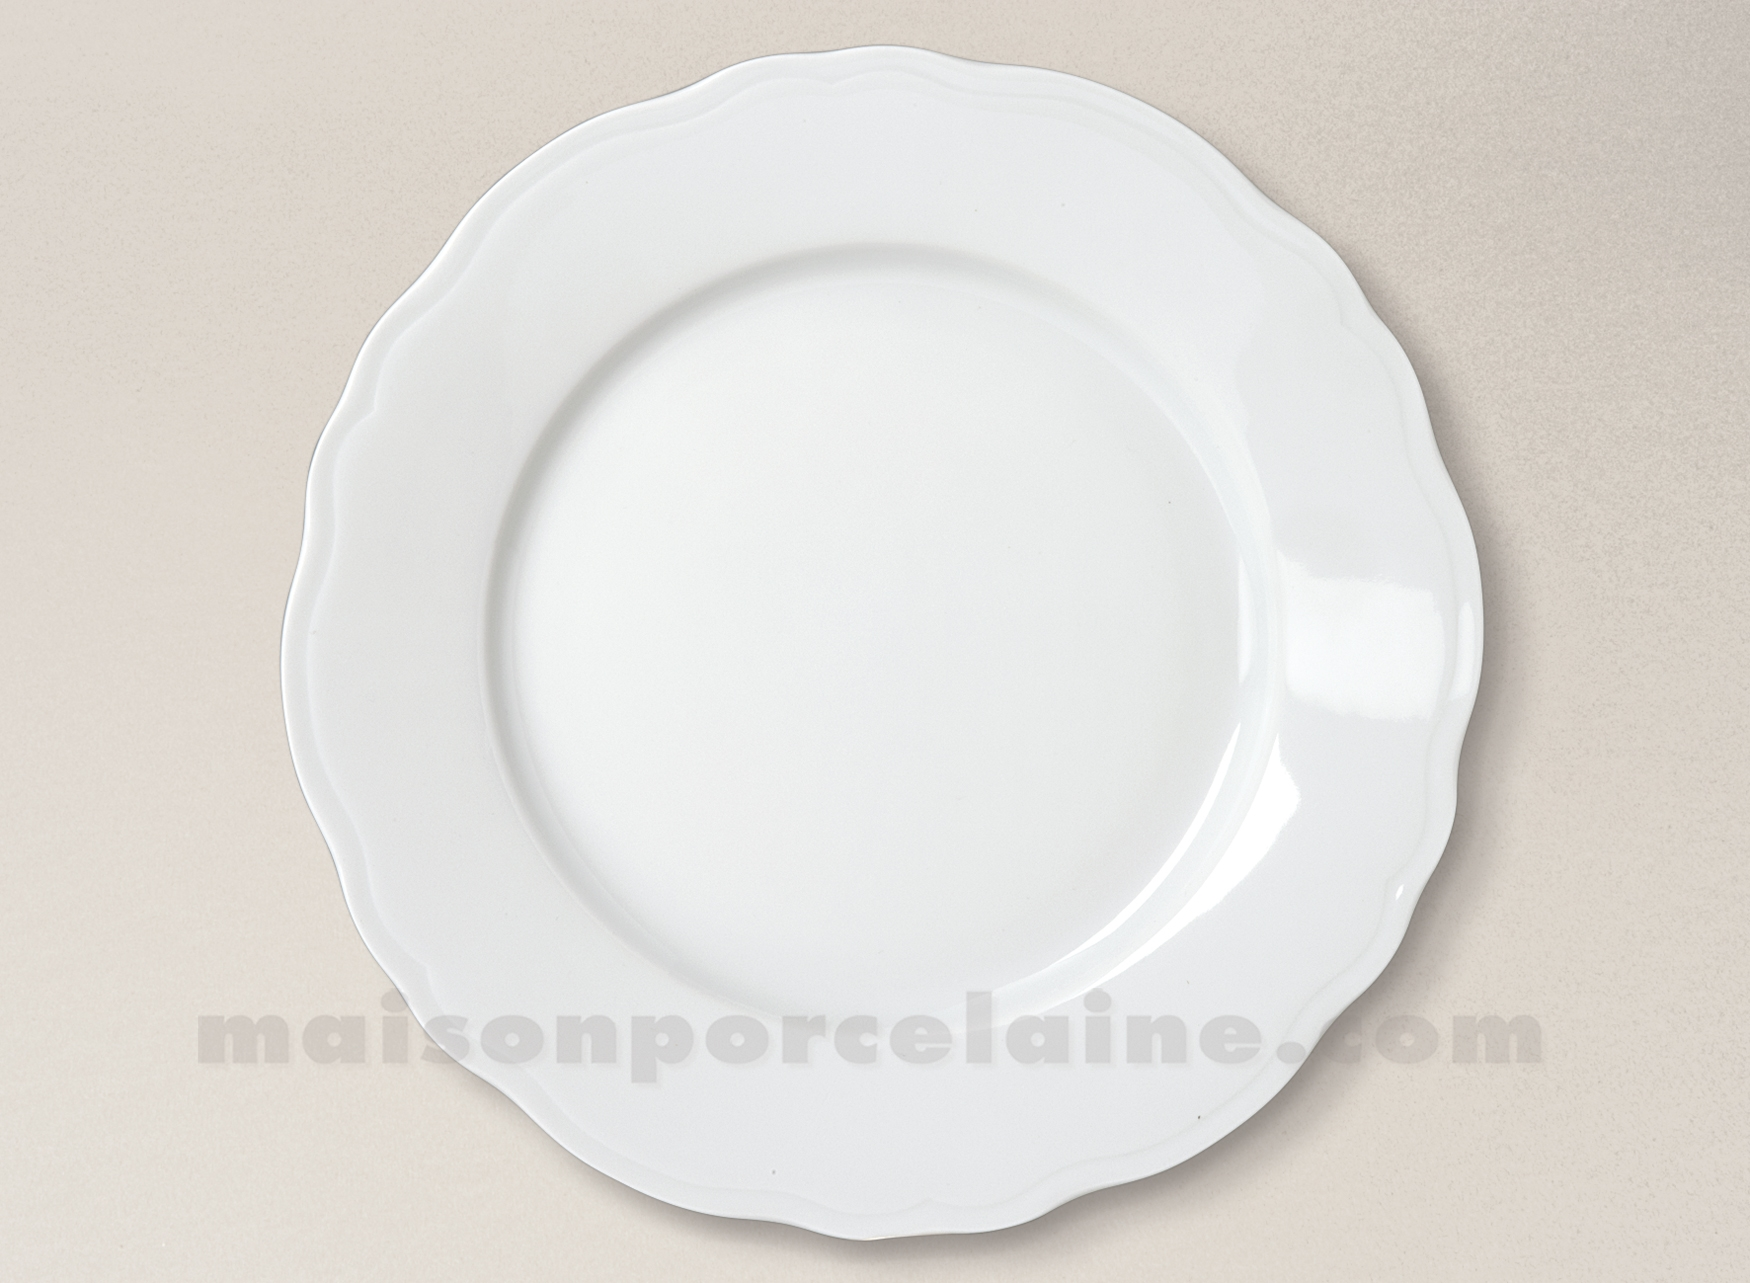 assiette plate limoges porcelaine blanche colbert d265 maison de la porcelaine. Black Bedroom Furniture Sets. Home Design Ideas